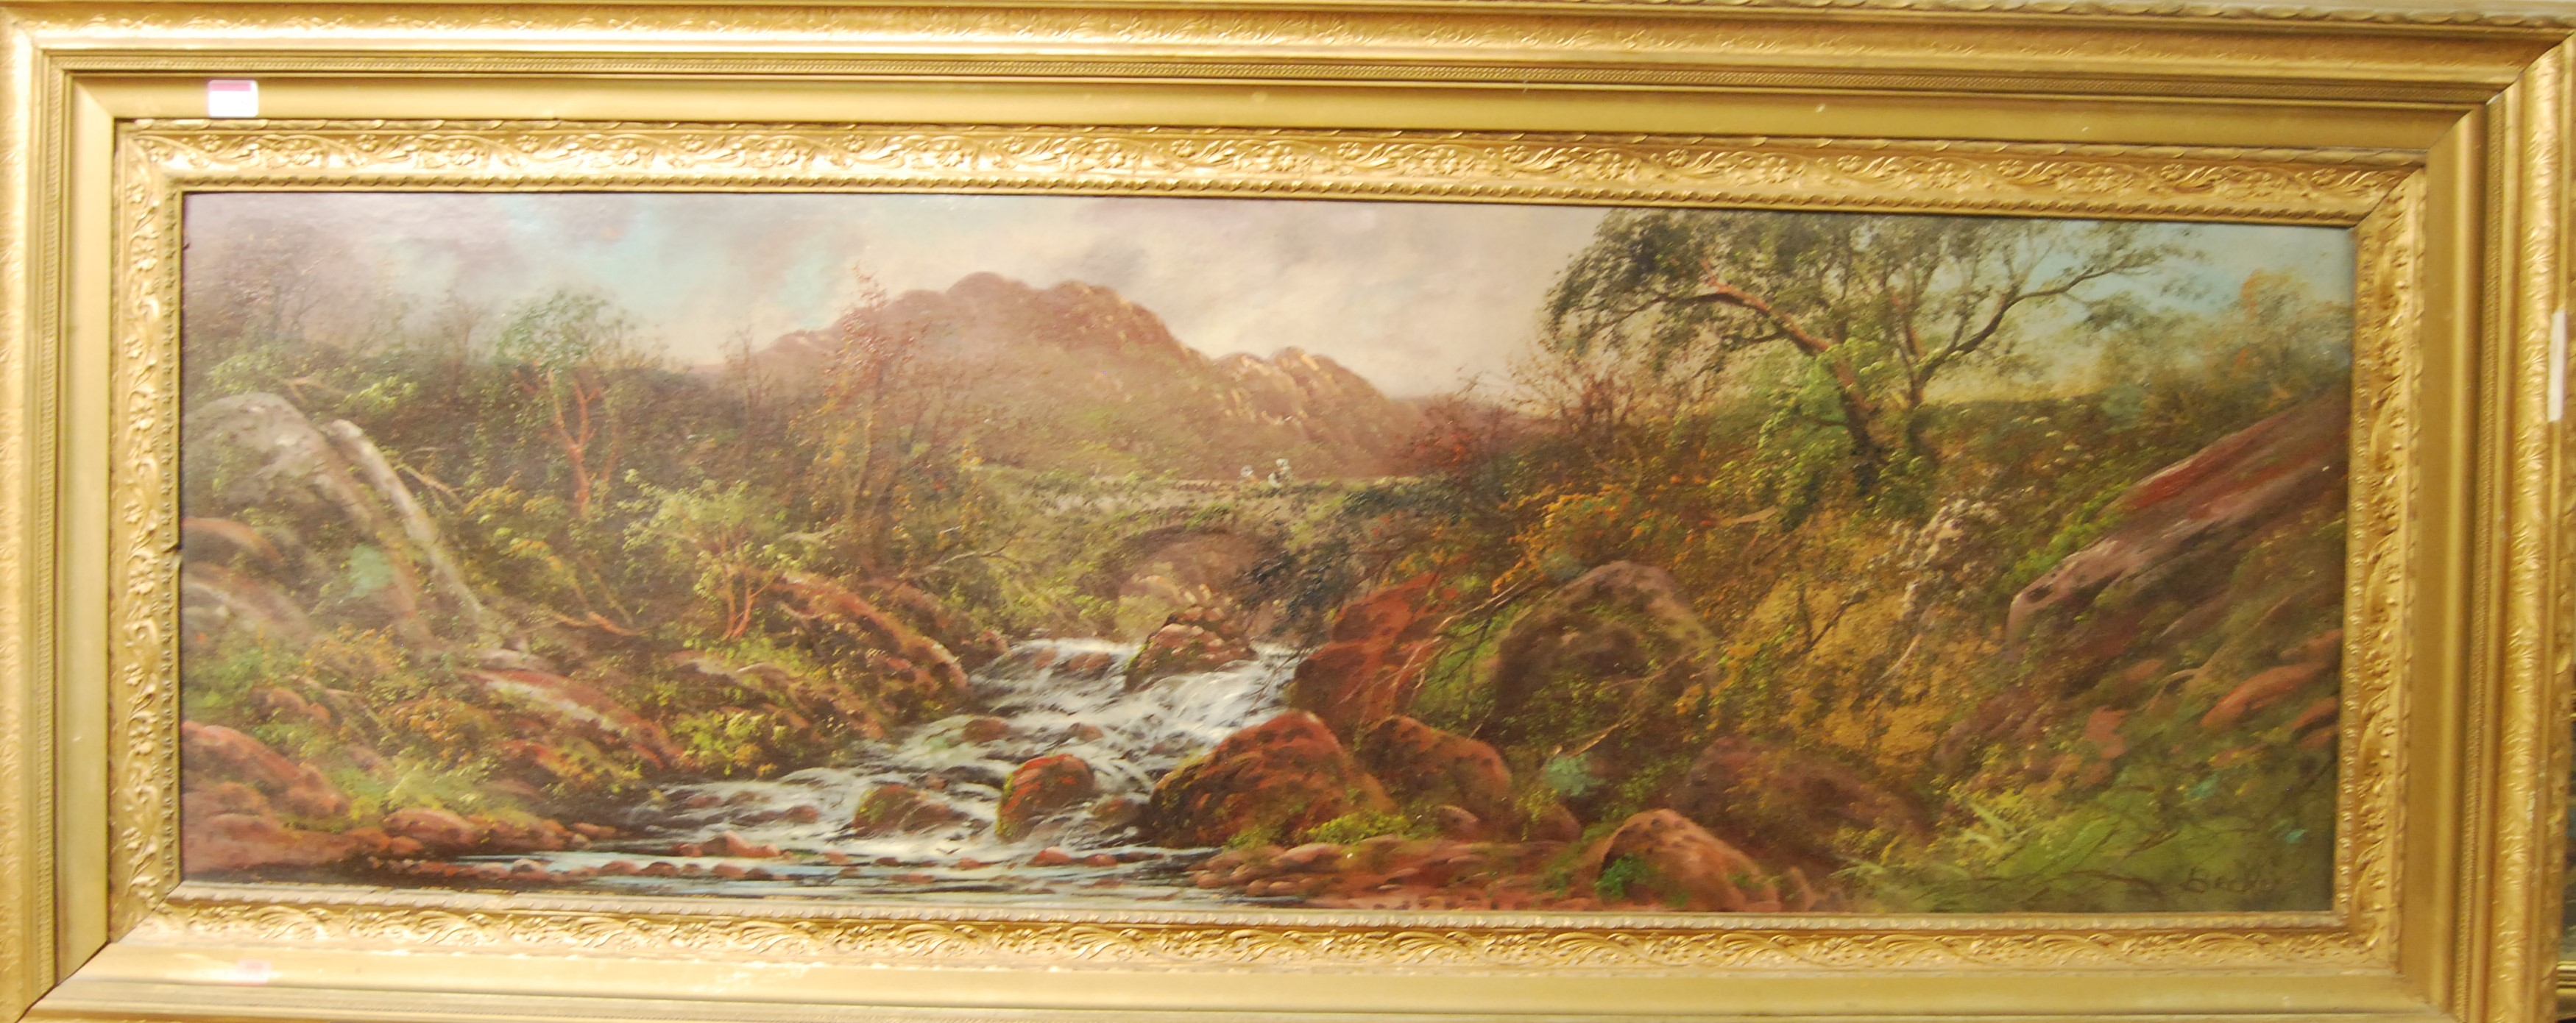 Lot 1014 - Beckett - Extensive landscape scene with figures on a stone bridge by a waterfall, oil on board,